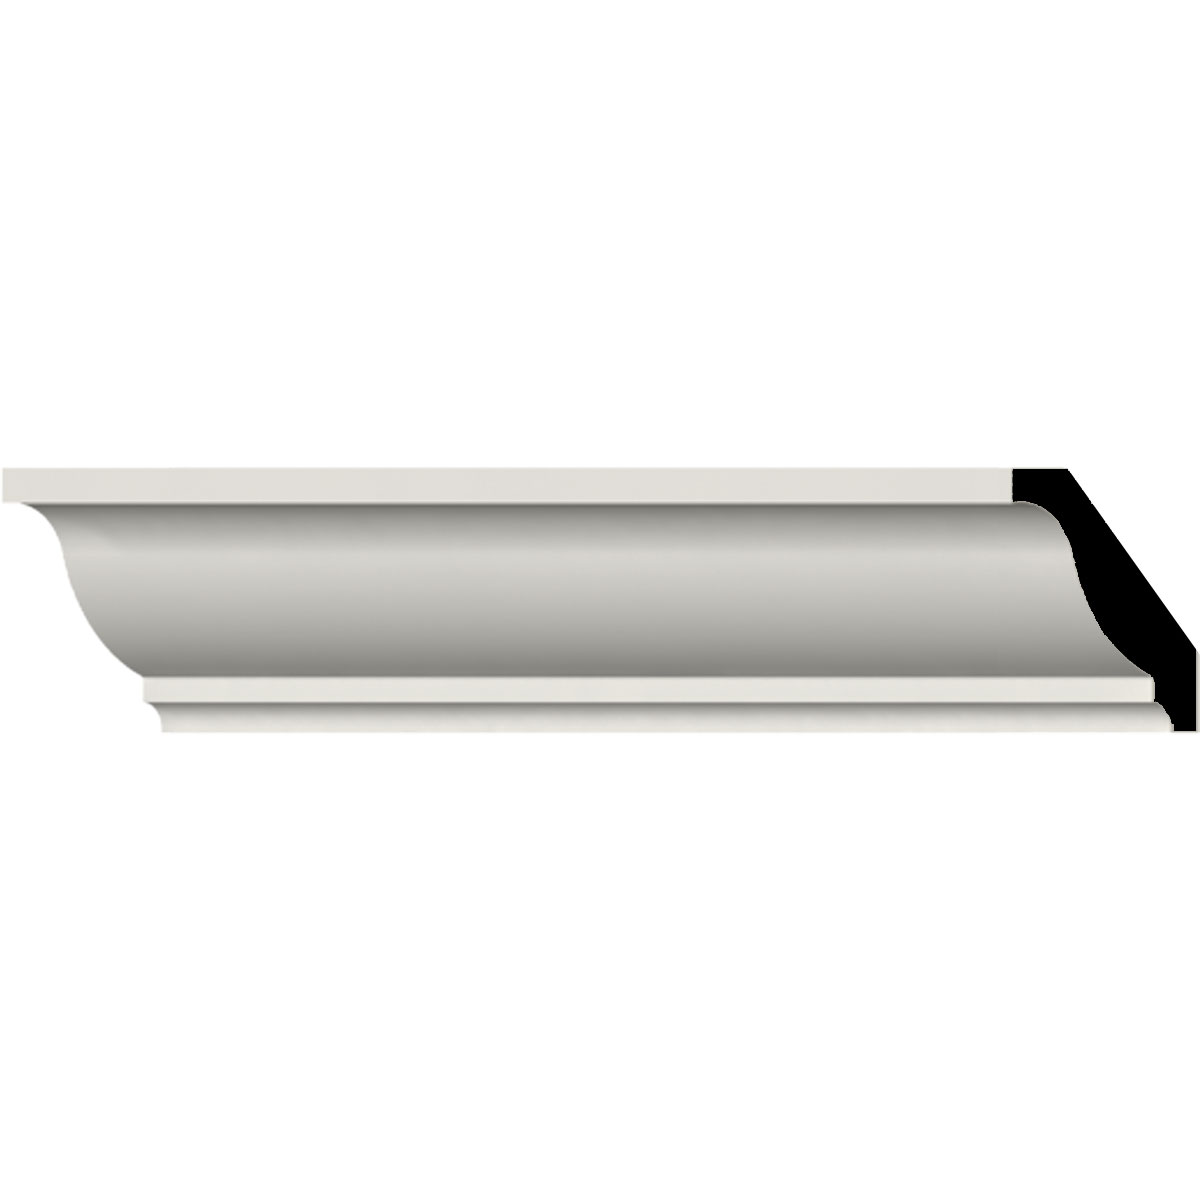 26 Off Mld01x01x02od Odessa Traditional Smooth Crown Molding Ekena Millwork